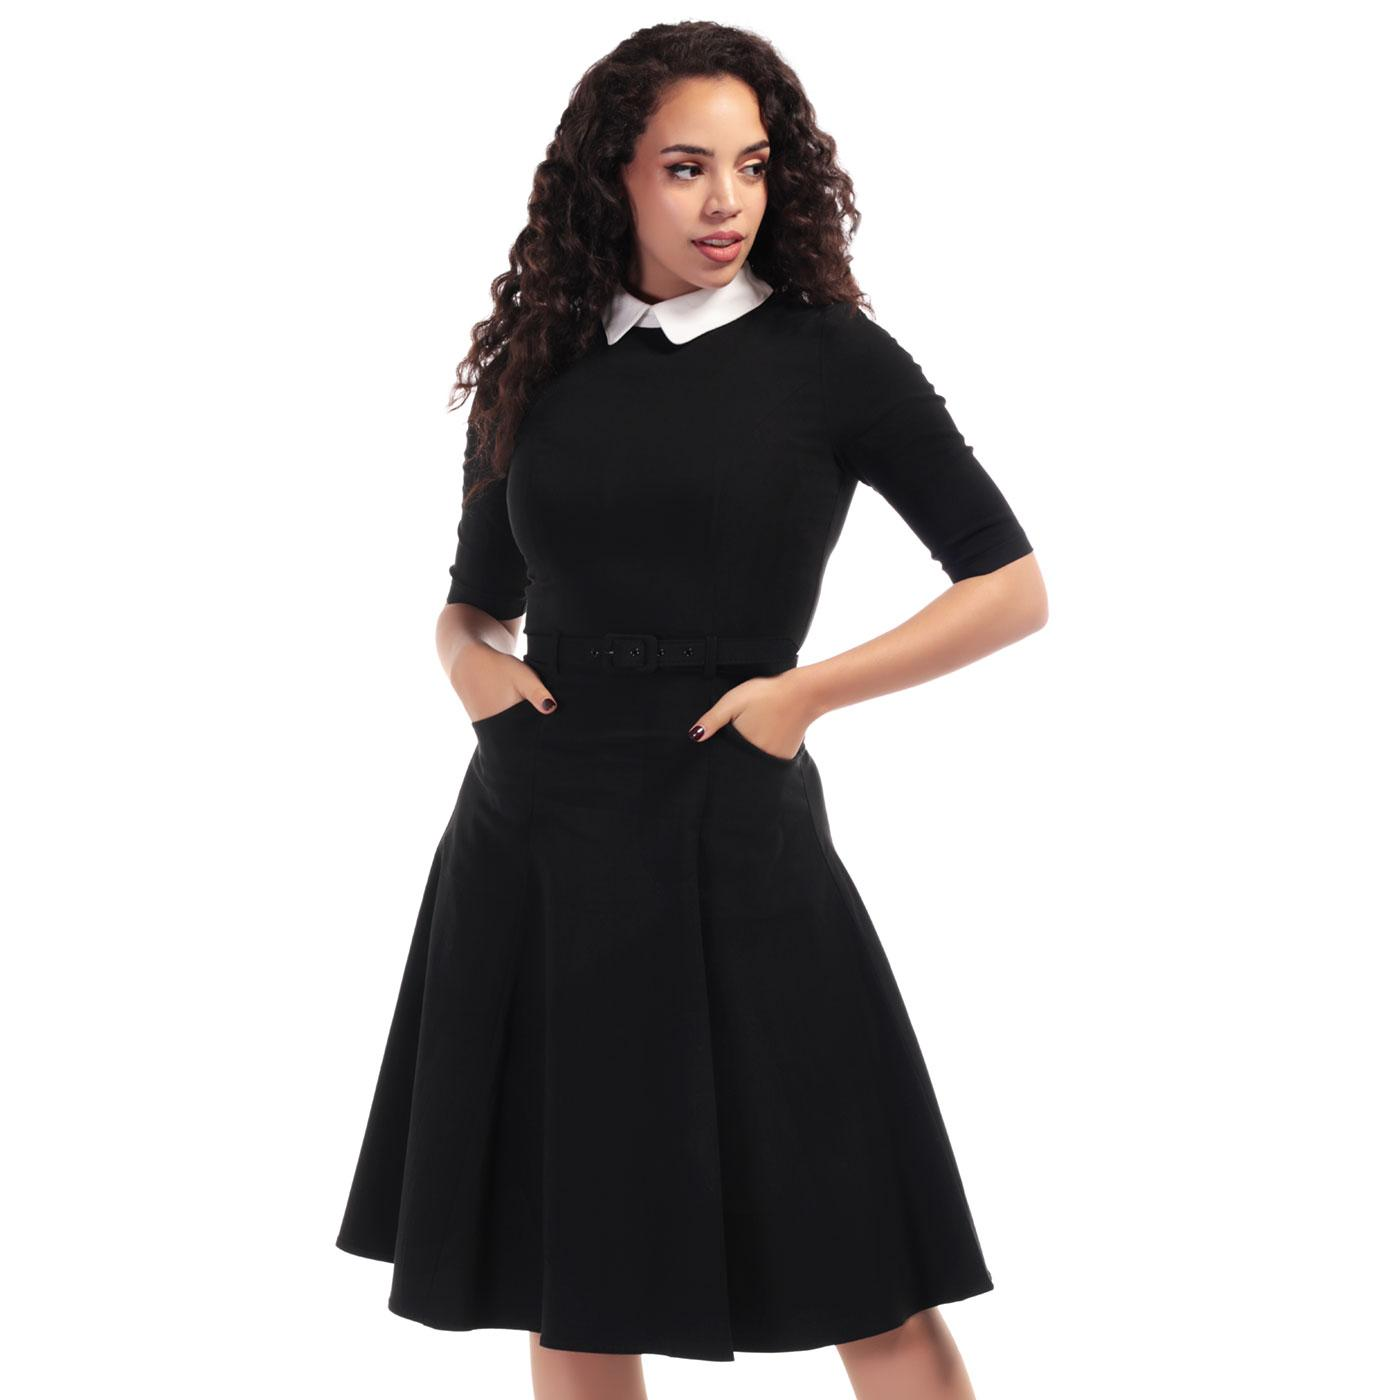 Winona COLLECTIF Retro Mod 60s Black Swing Dress